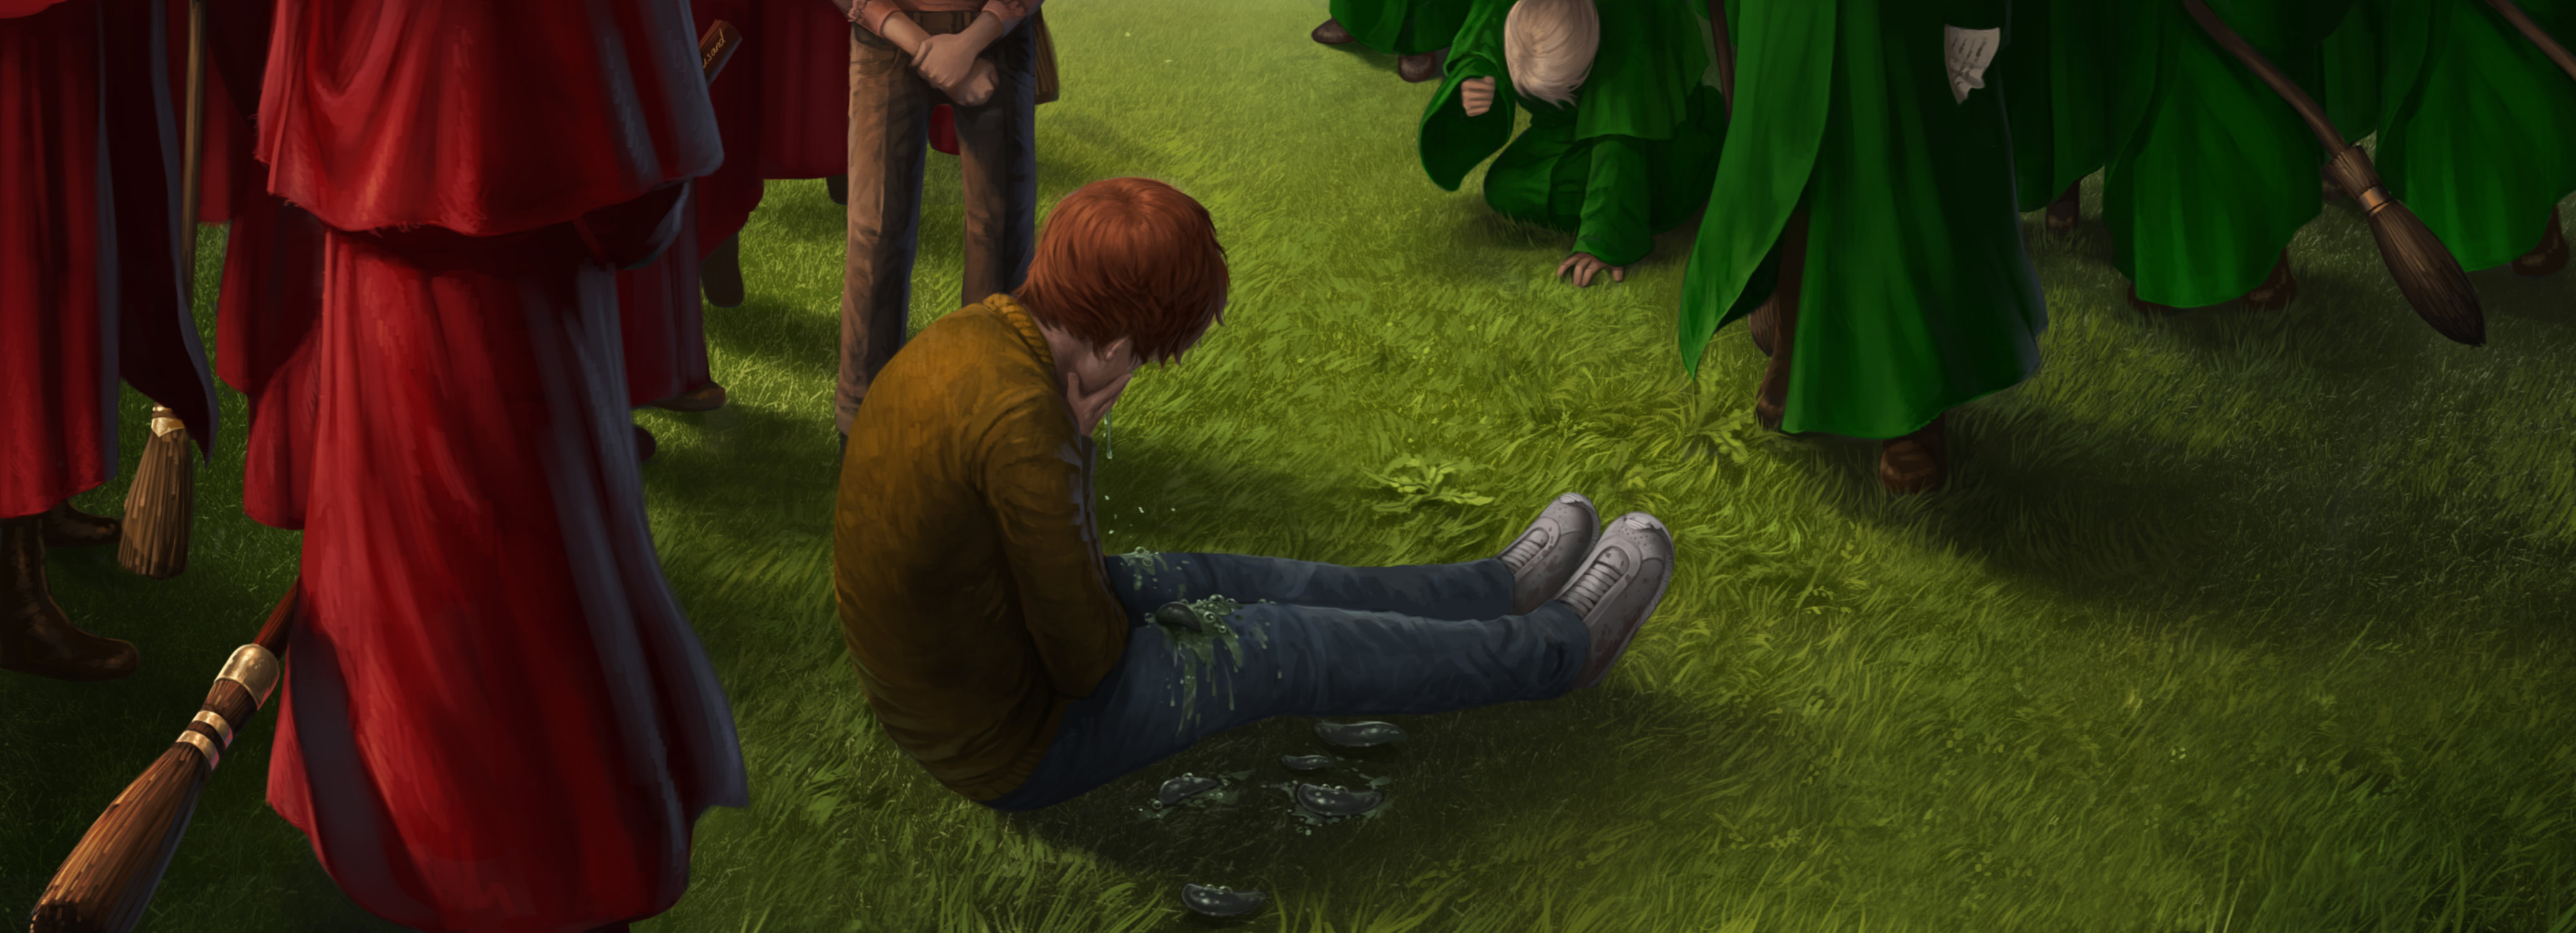 Ron vomits slugs at the Quidditch pitch.